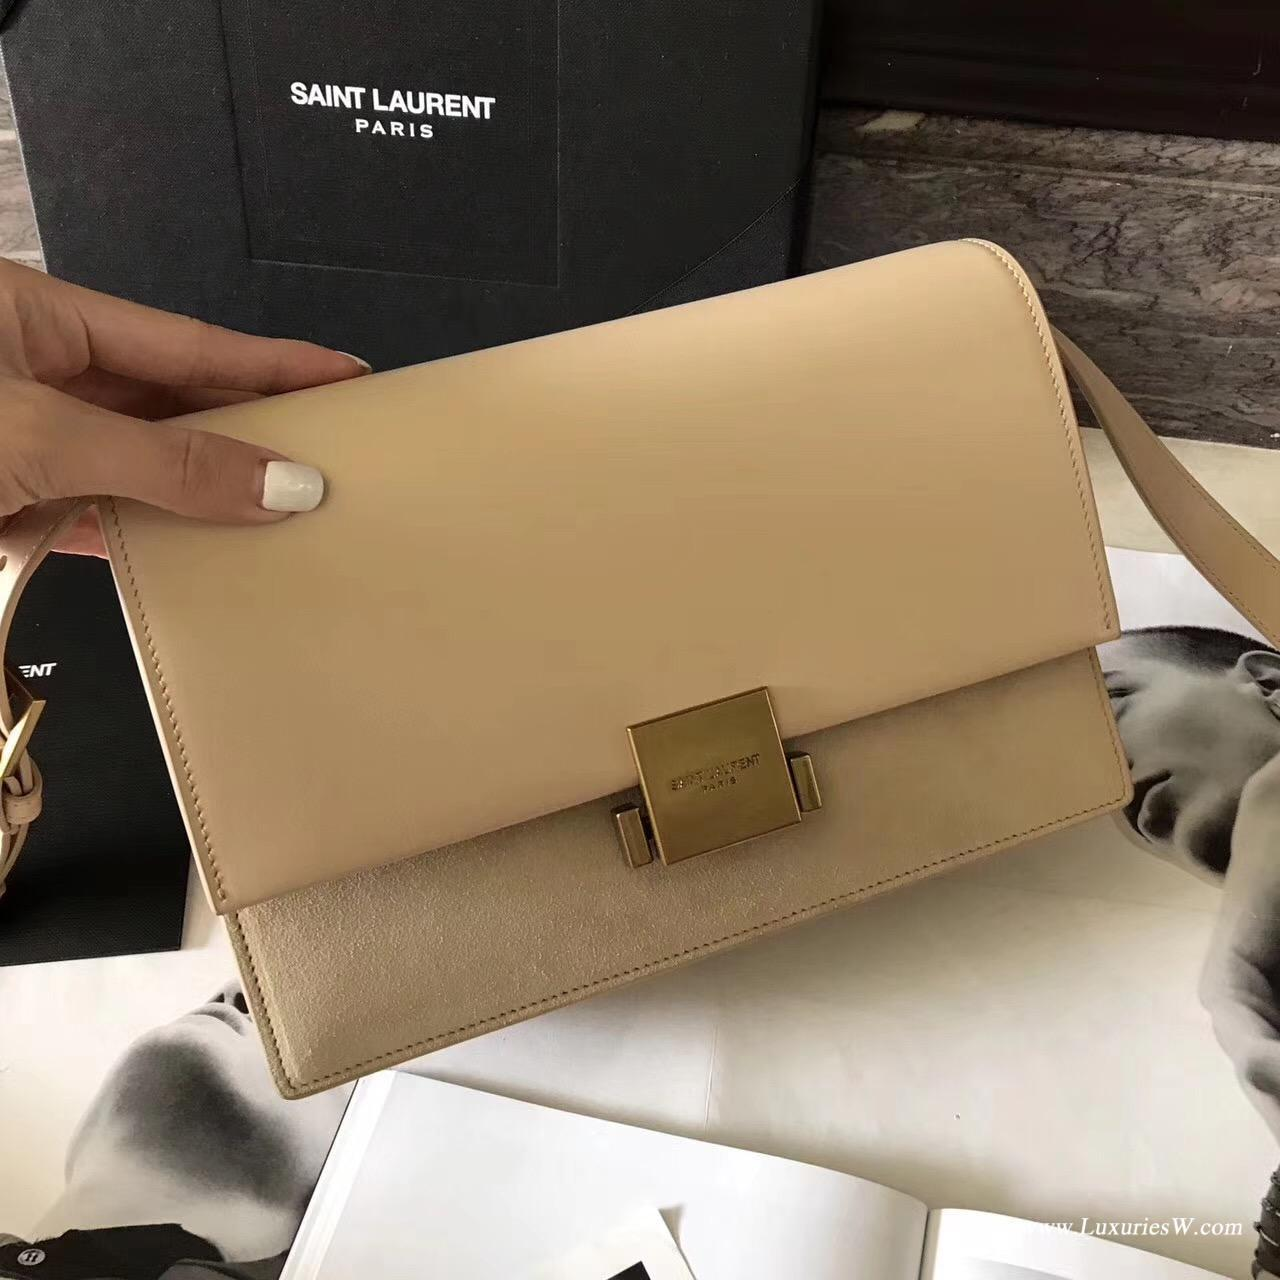 Medium BELLECHASSE SAINT LAURENT bag in black leather and taupe suede